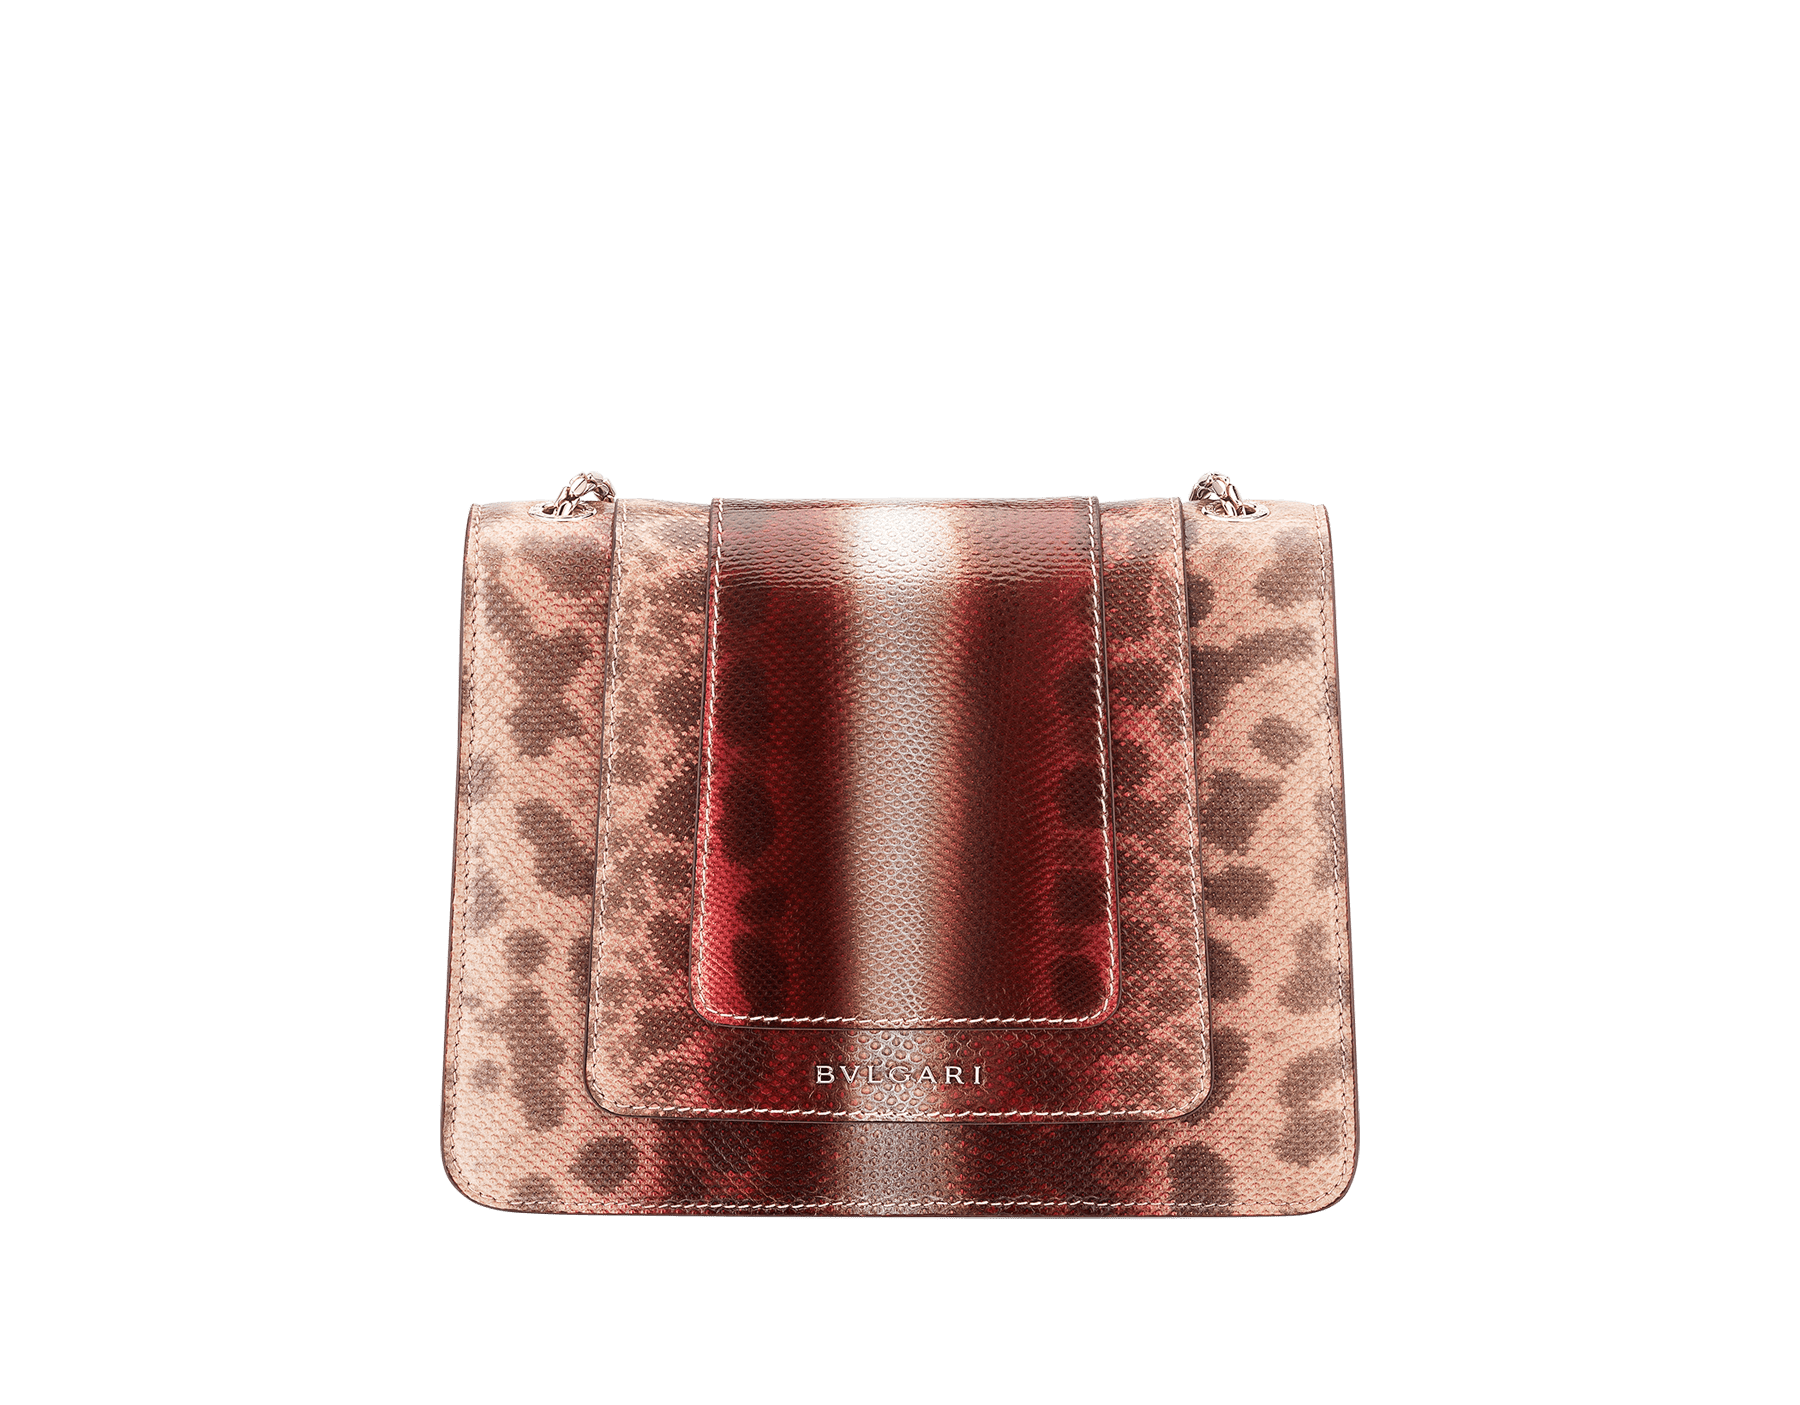 Serpenti Forever crossbody bag in rosa di francia Sahara karung skin. Iconic snakehead closure in light gold plated brass embellished with Roman garnet and black enamel and black onyx eyes. 289012 image 3